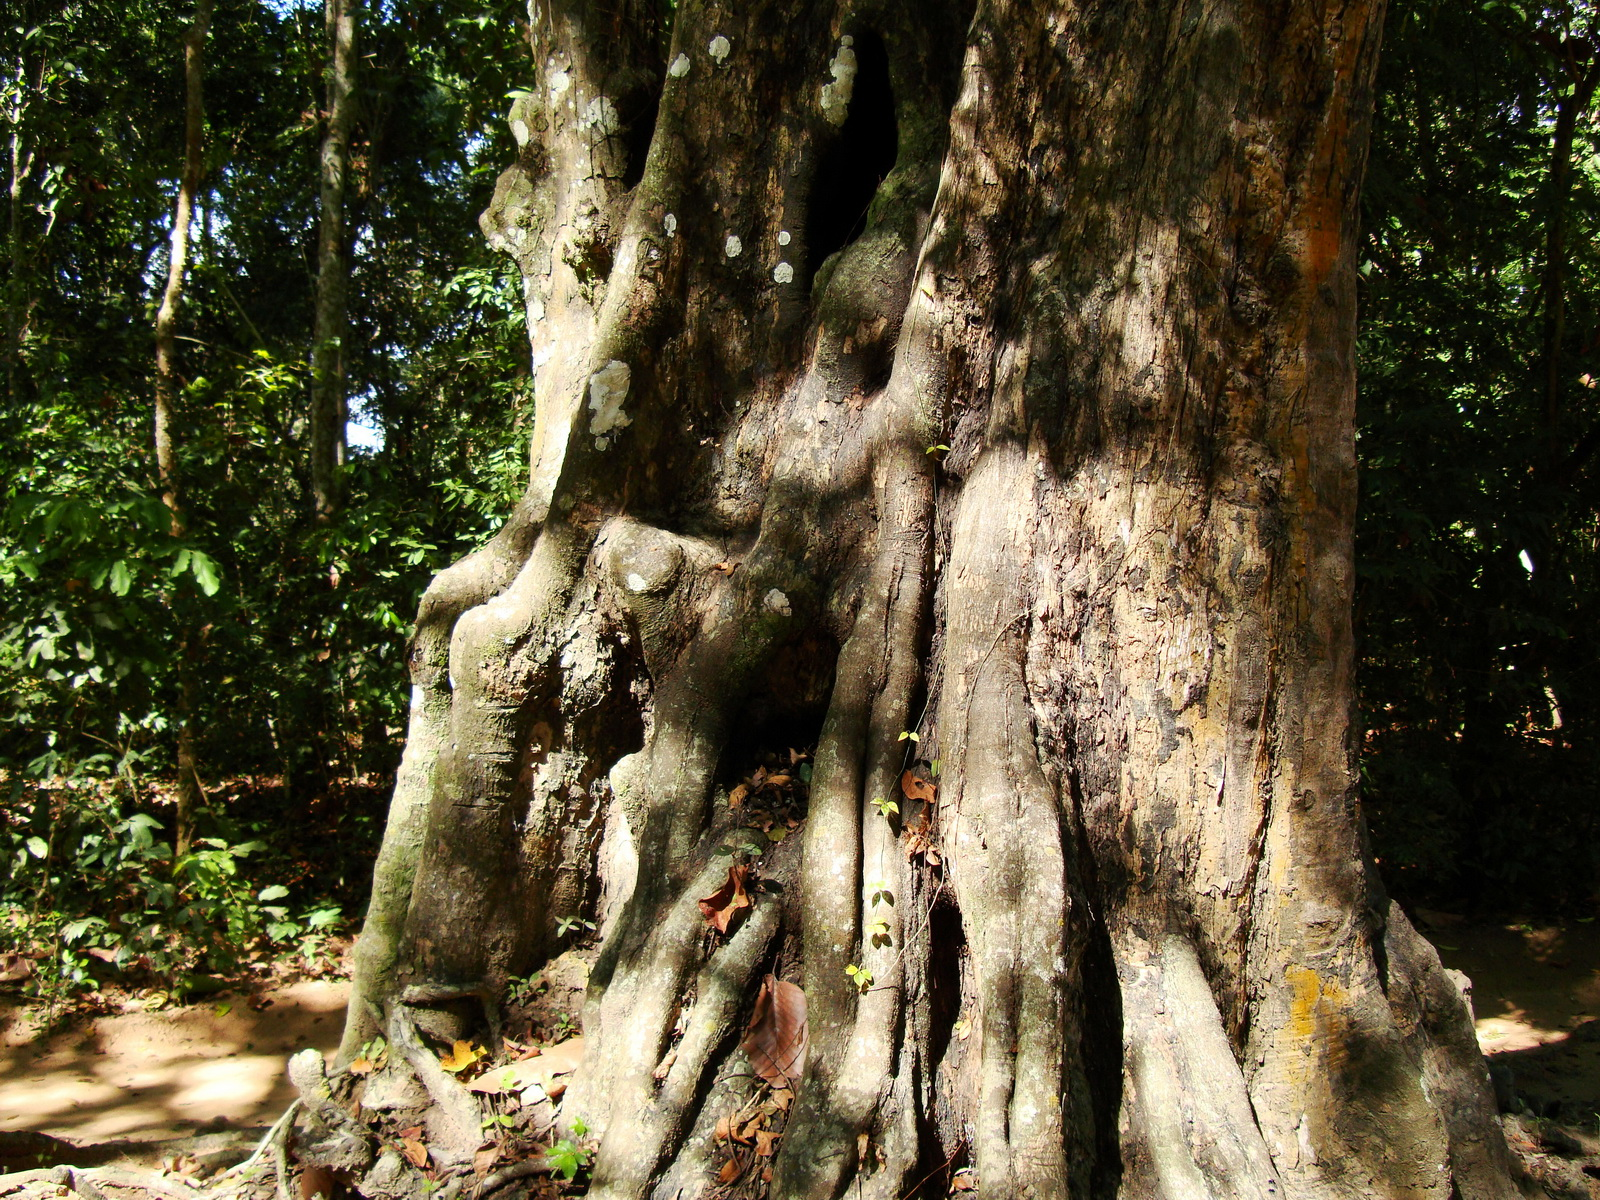 A Banteay Kdei Temple giant spirit trees 03